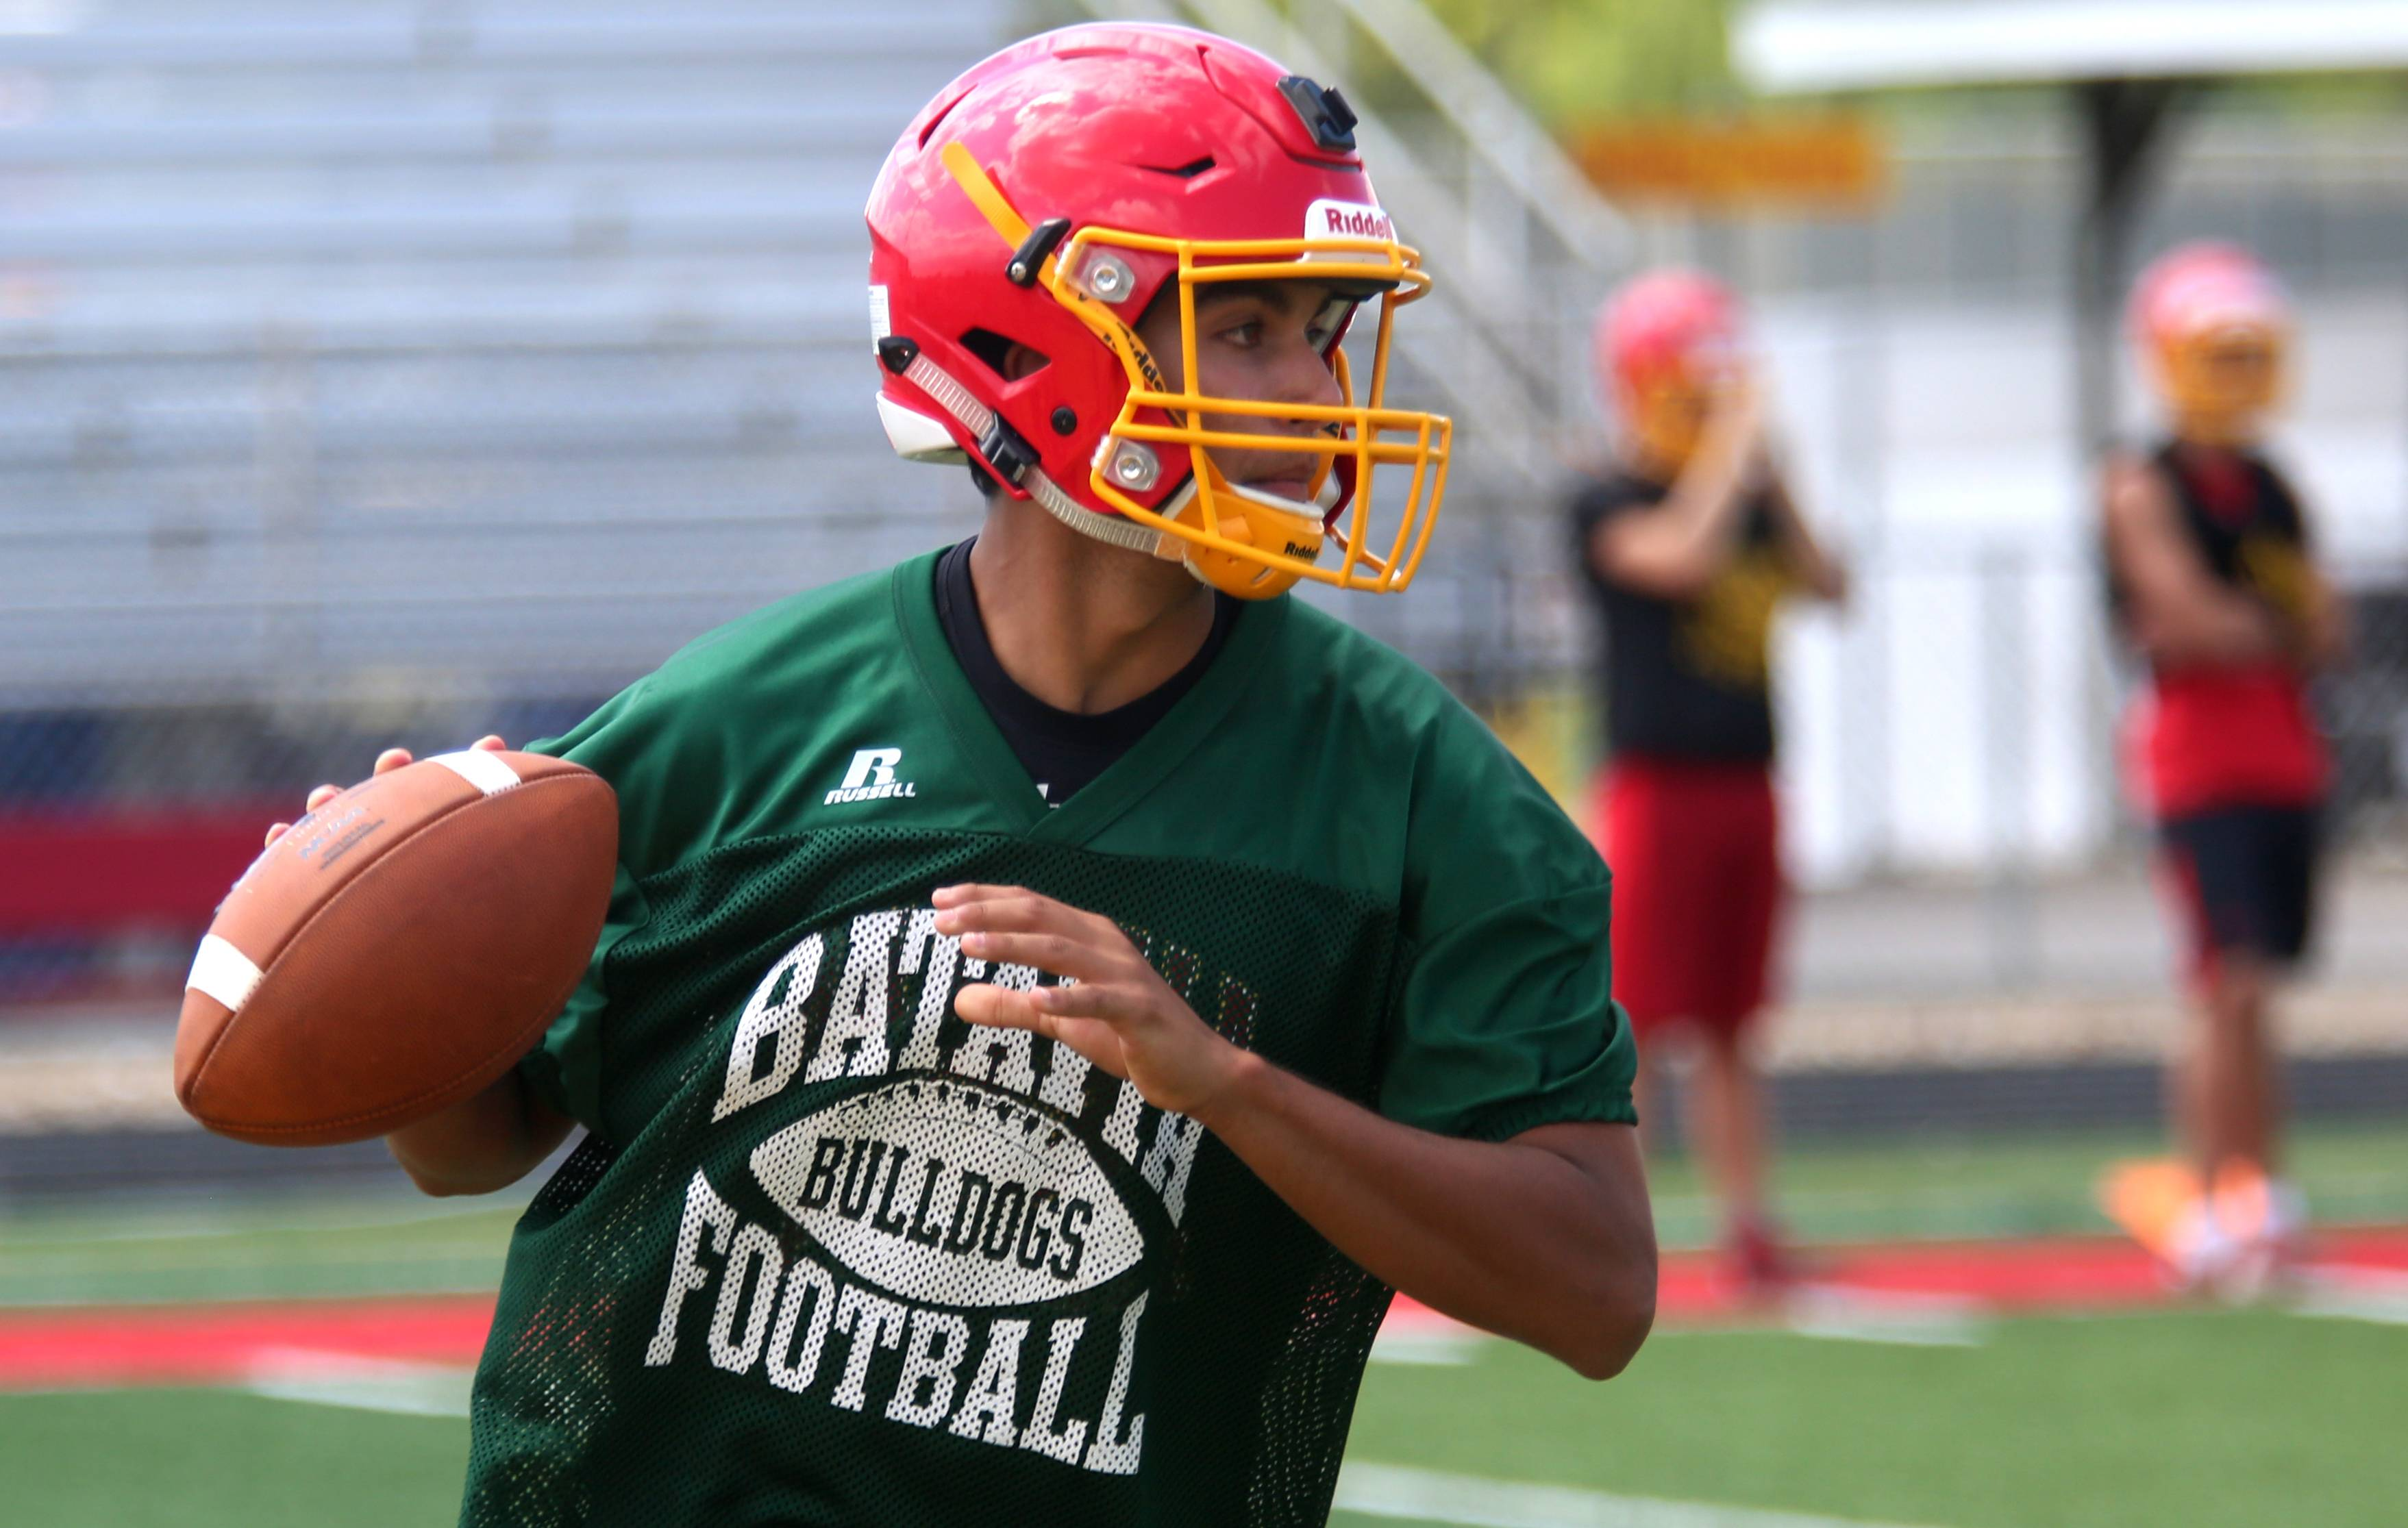 Riley Cooper prepares to throw the ball during the first day of the varsity practice season for Batavia High School football at Bulldog Stadium in Batavia Monday.